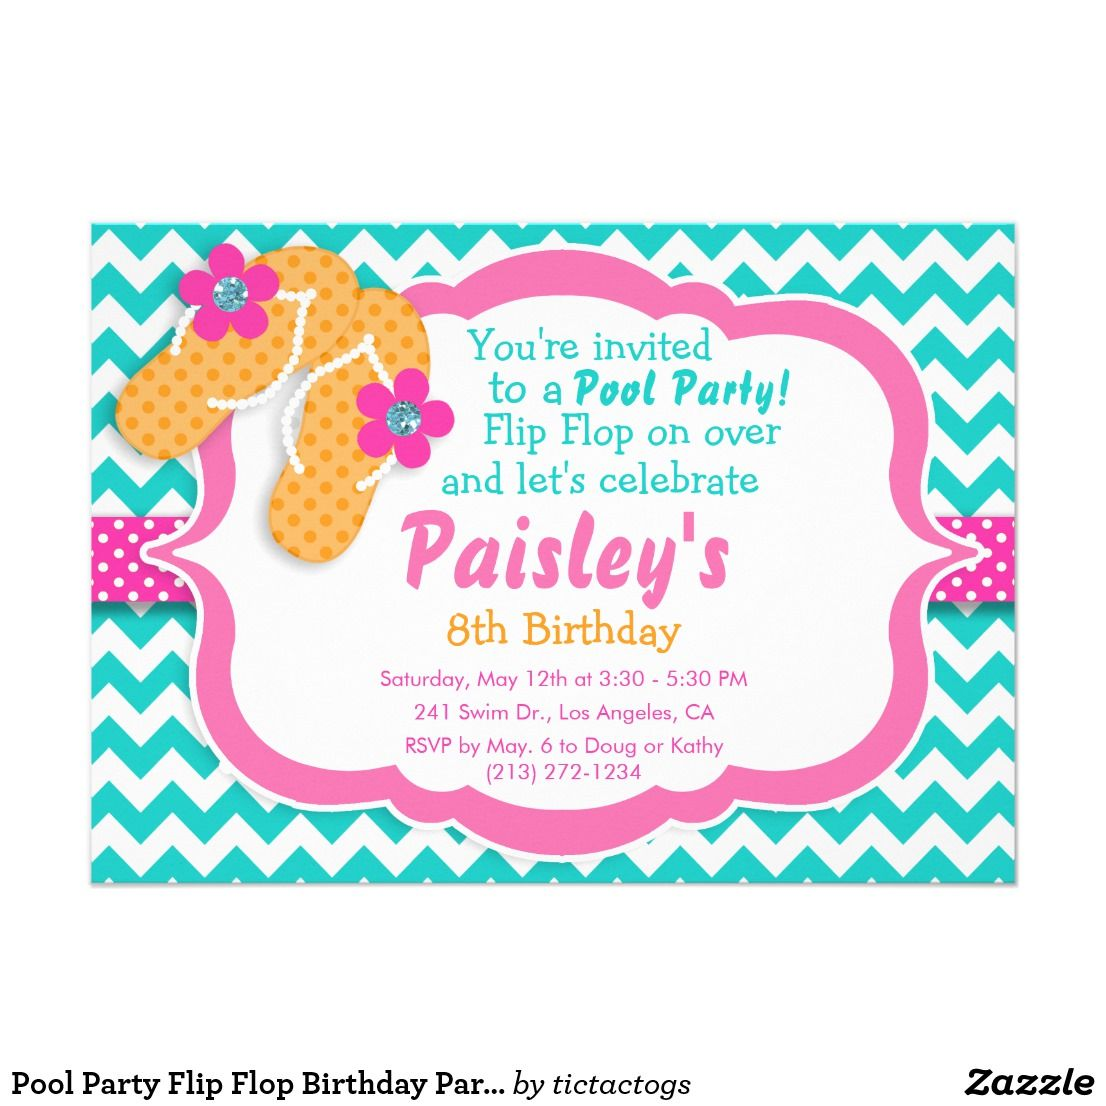 Pool Party Flip Flop Birthday Party Invitation | Party invitations ...